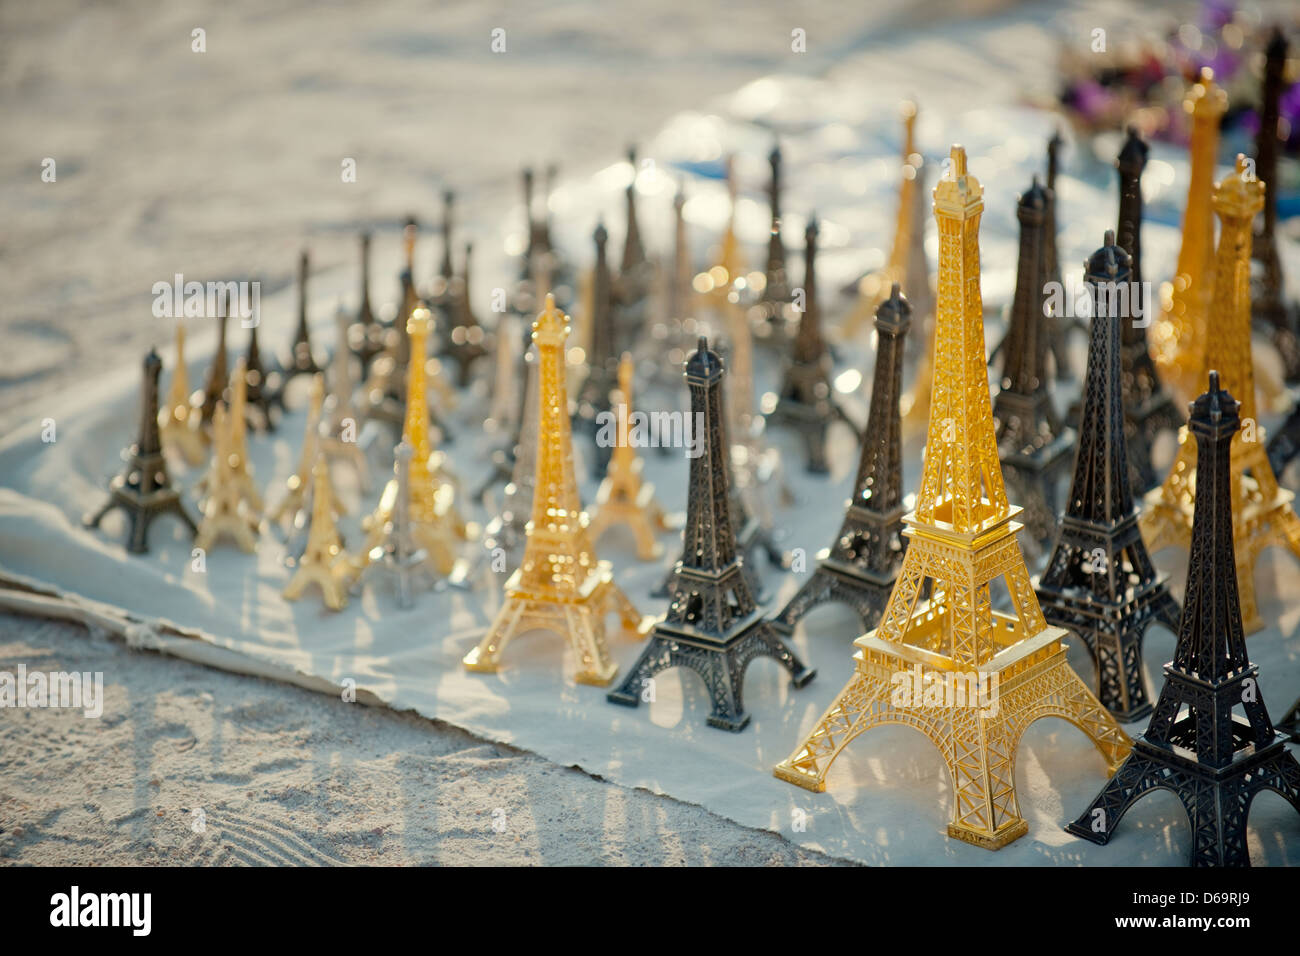 Eiffel Tower replicas for sale - Stock Image